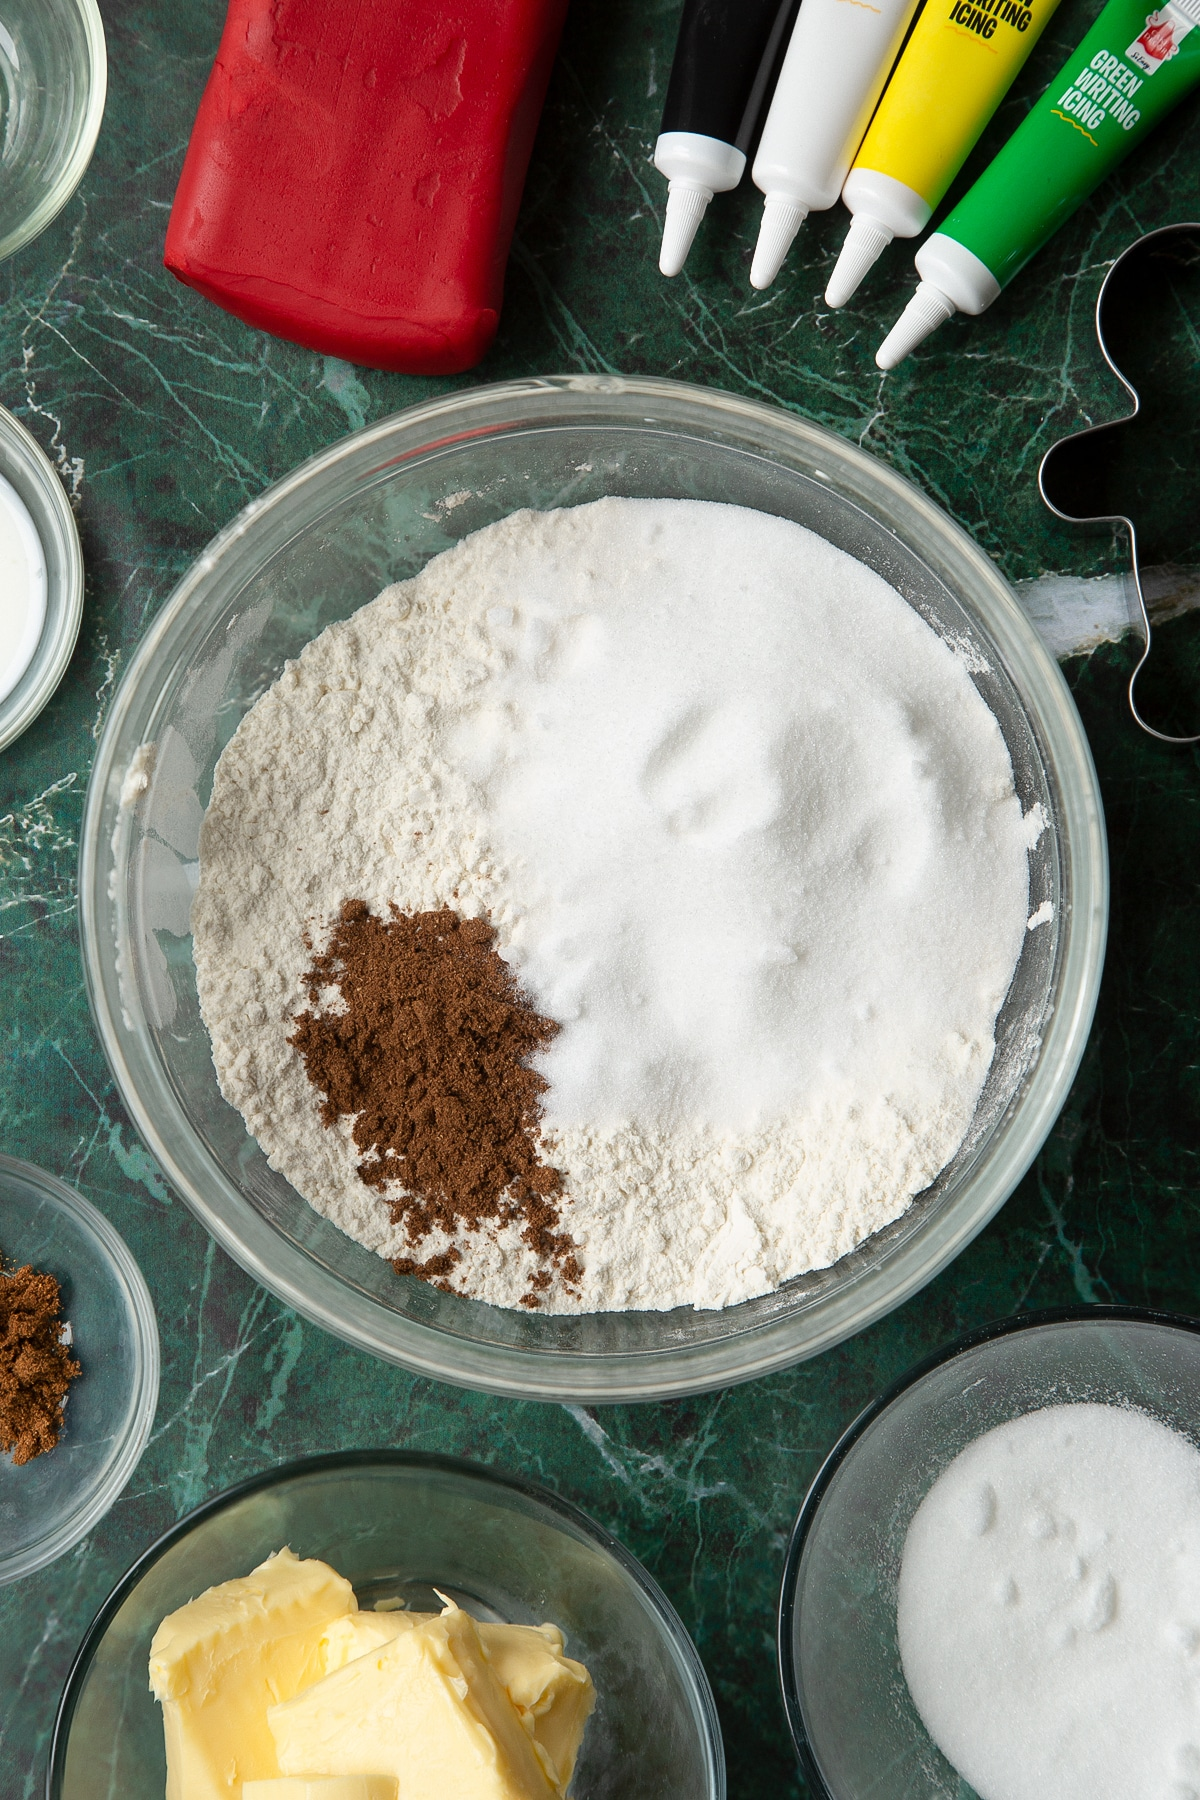 Flour, sugar and mixed spice in a glass mixing bowl, surrounded by ingredients to make Father Christmas cookies.